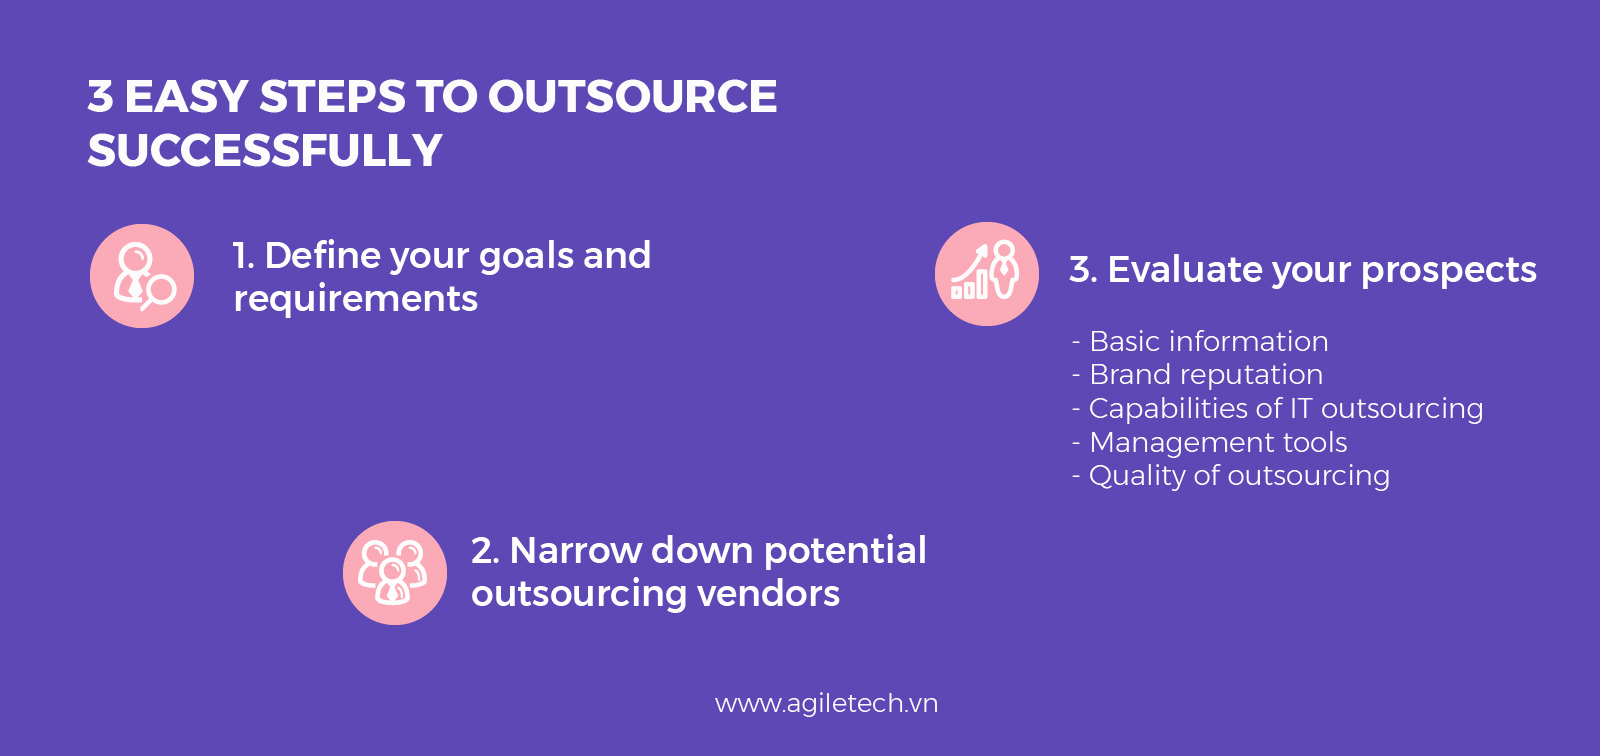 steps to outsource successfully agiletech